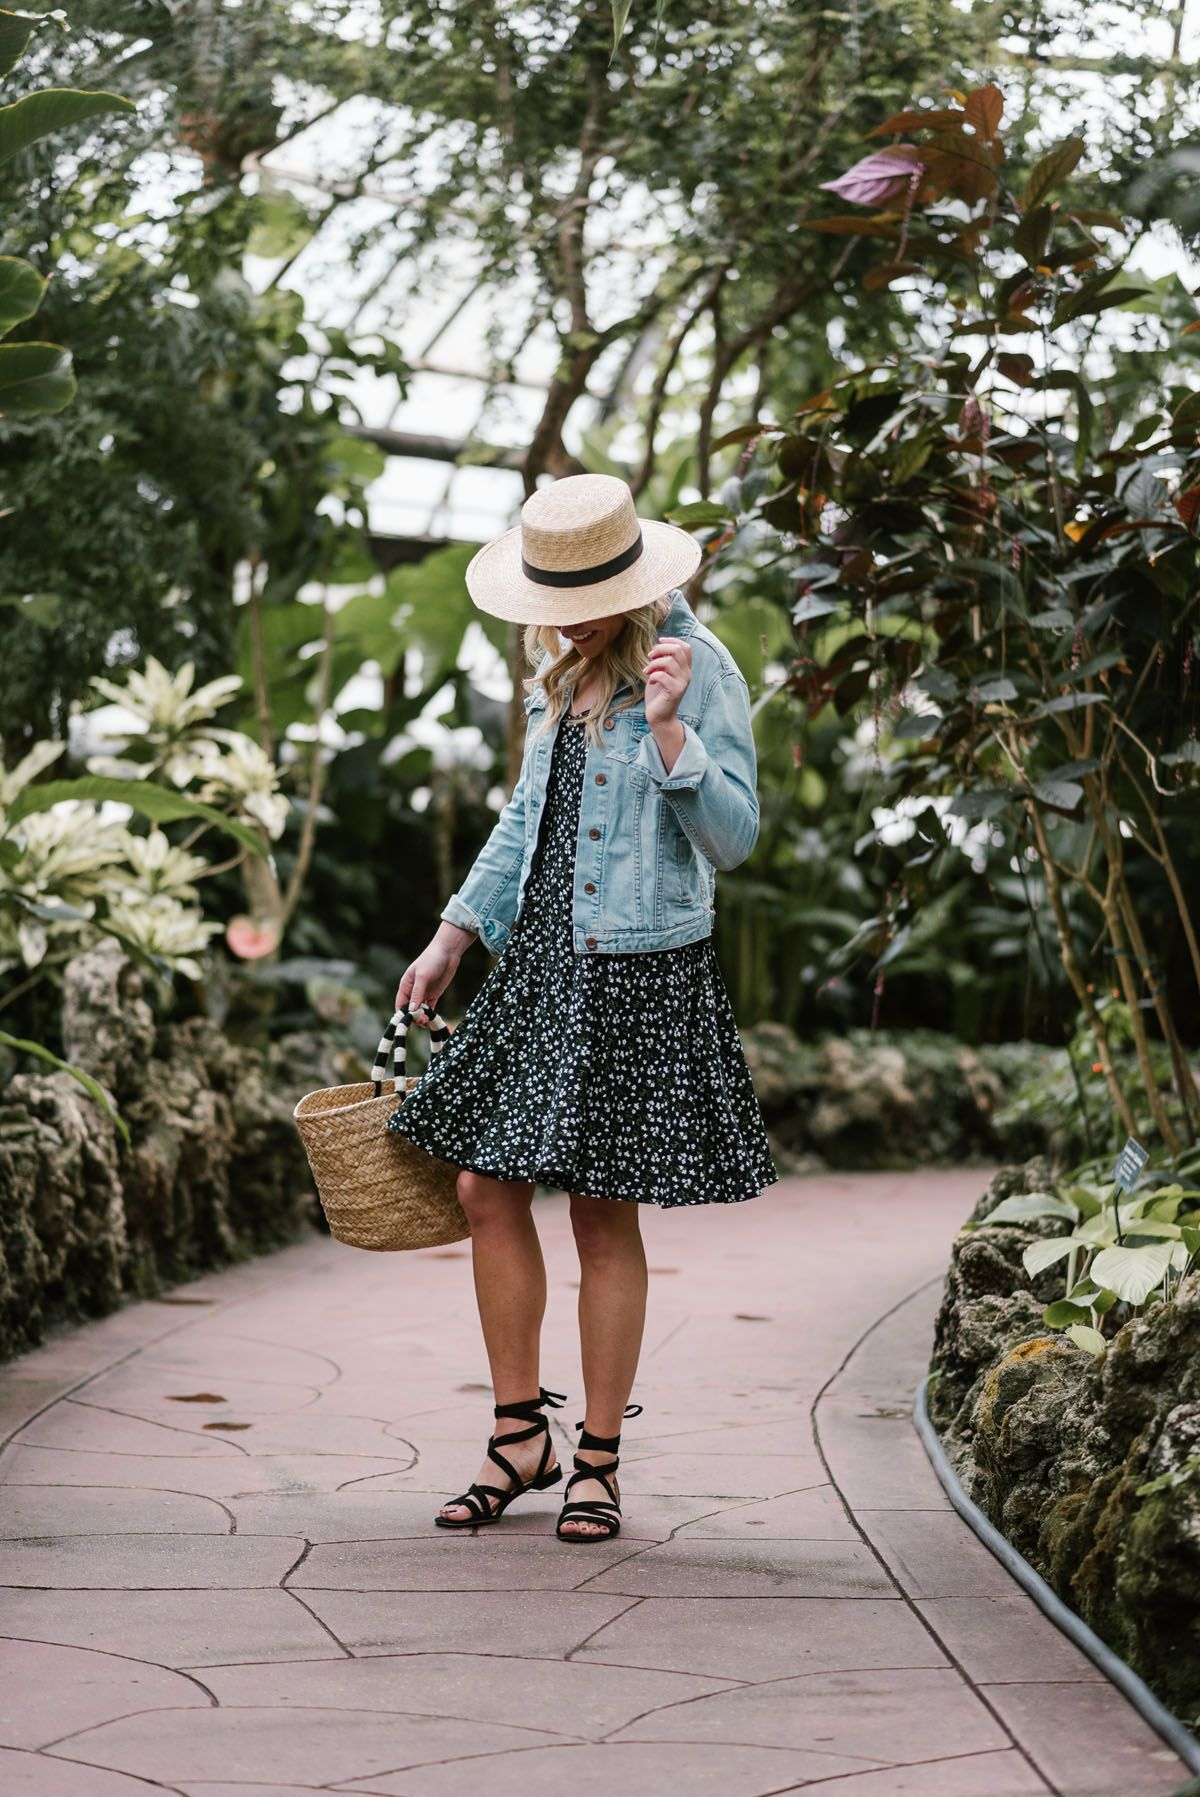 Spring Outfit Floral Dress Denim Jacket Bows Sequins Denim Jacket With Dress Outfit Inspiration Spring Spring Outfit [ 1797 x 1200 Pixel ]